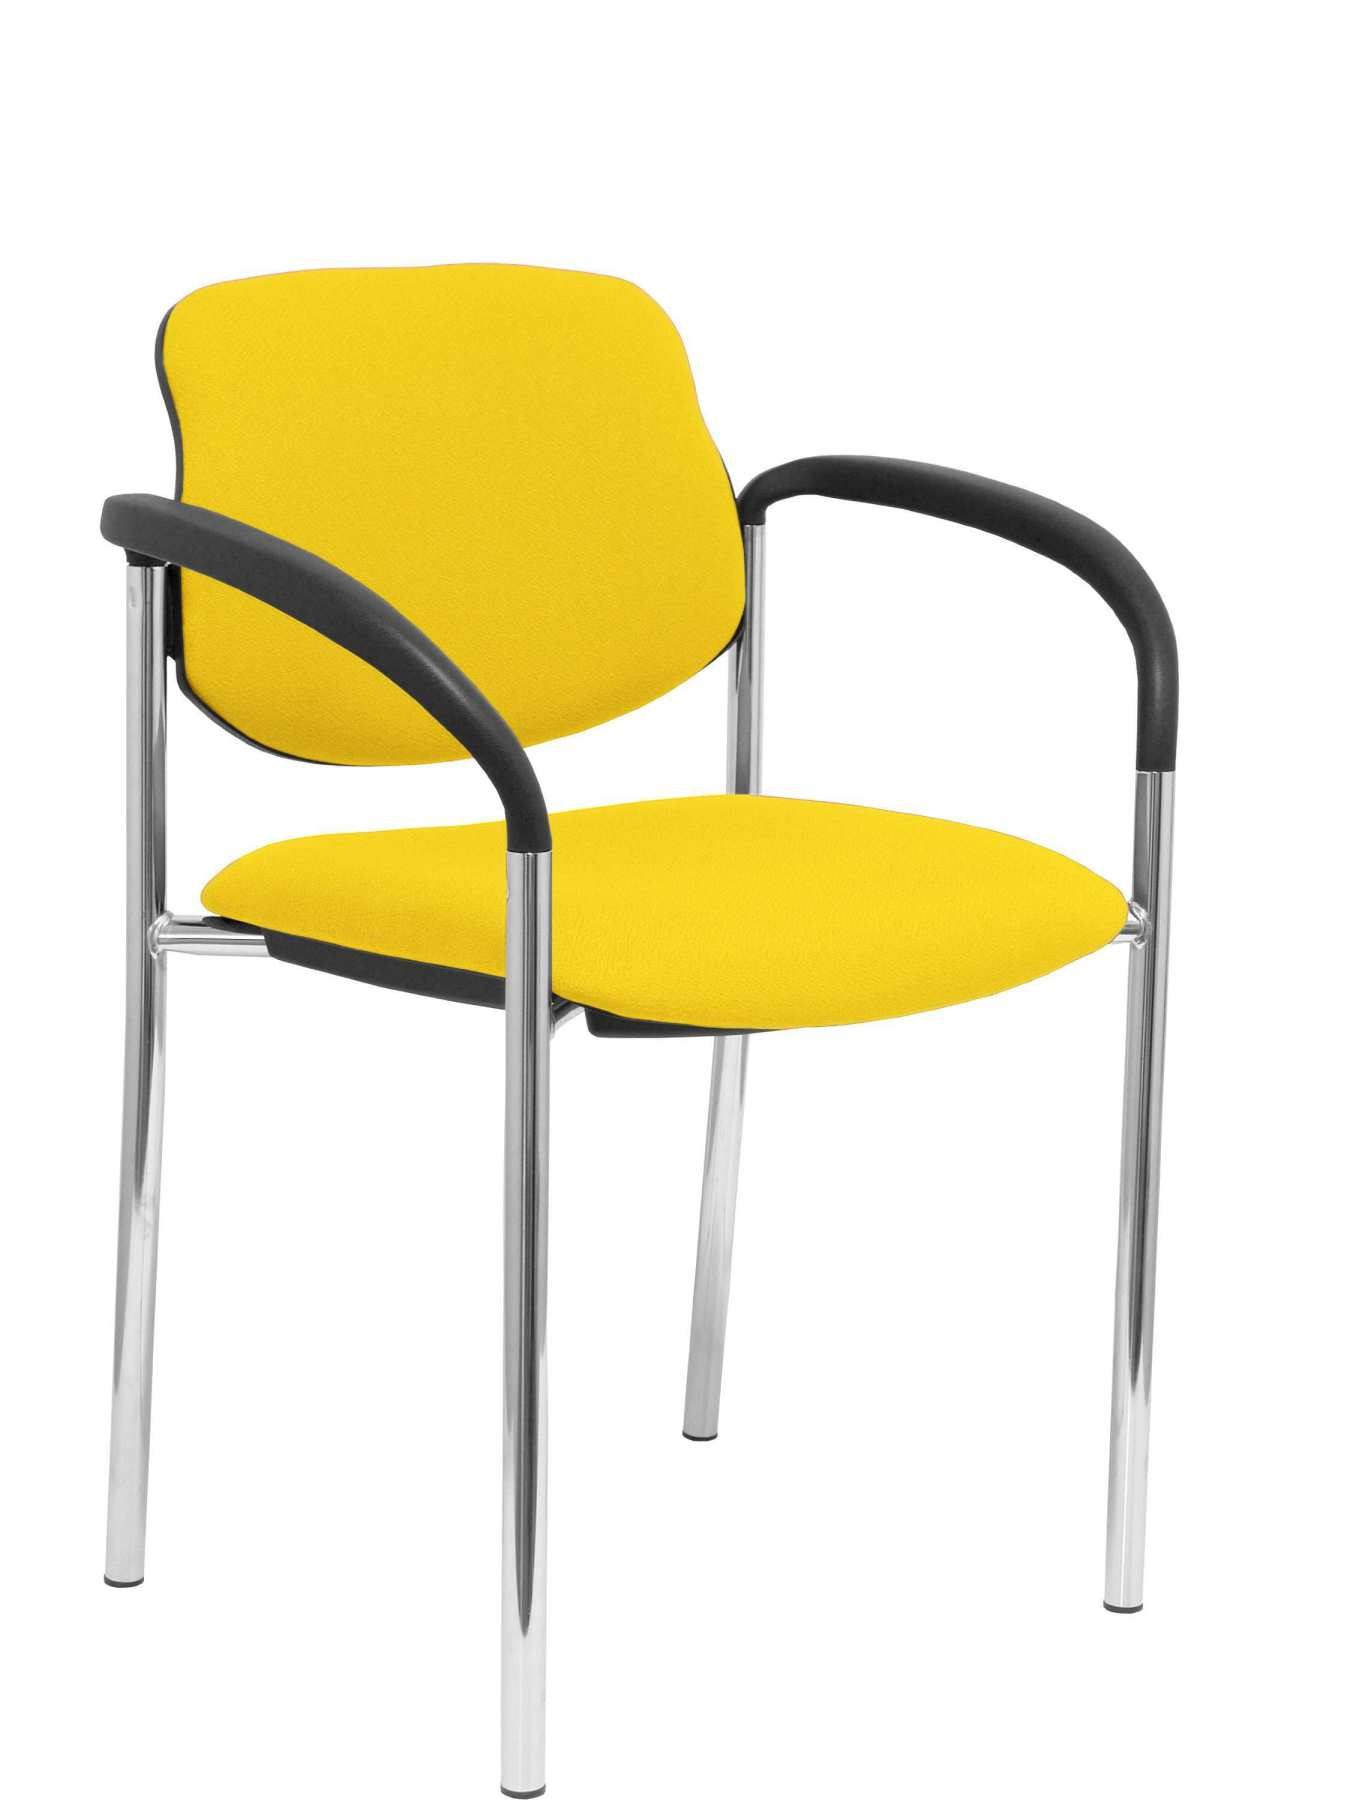 Confident Chair 4-leg And Estructrua Chrome Arms-Seat And Back Upholstered In Fabric BALI Yellow